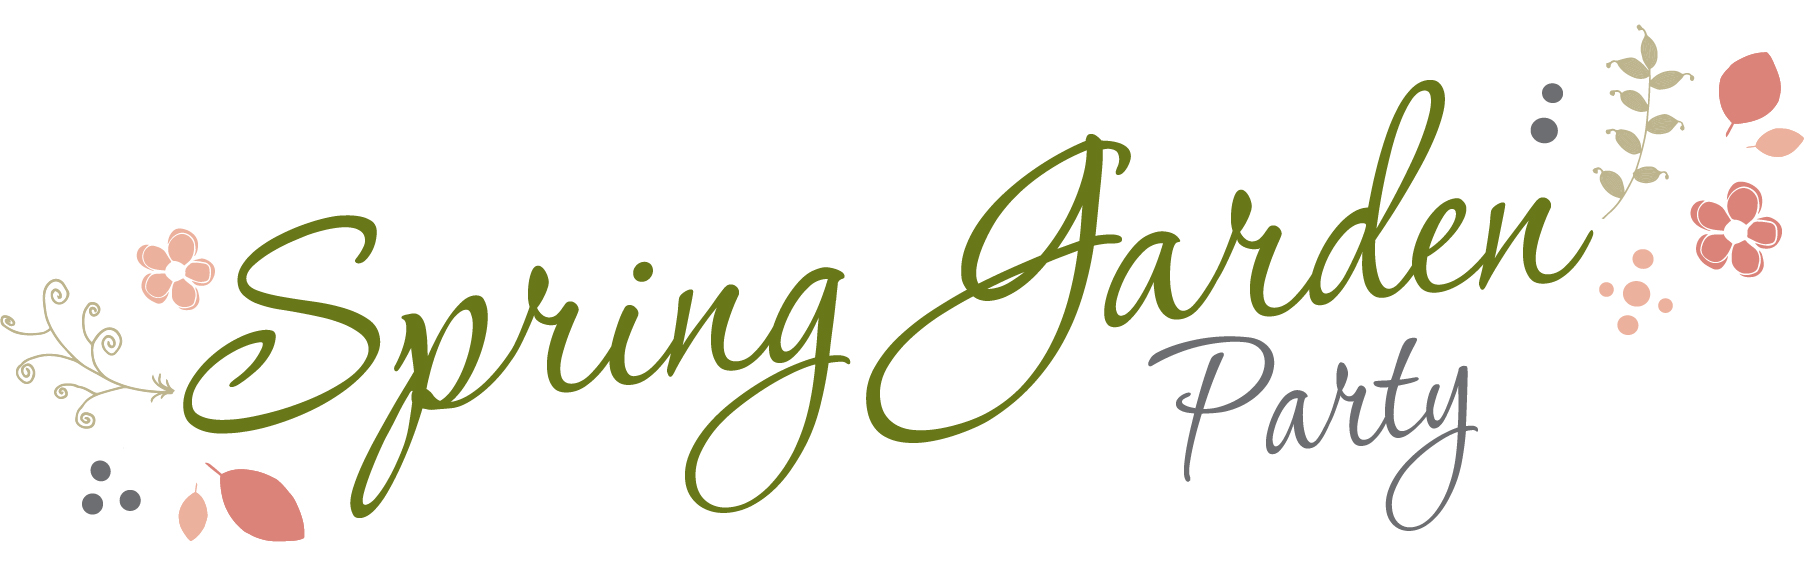 attend our first annual Spring Garden Party on Saturday June 1, 2019 from 1-4 pm!